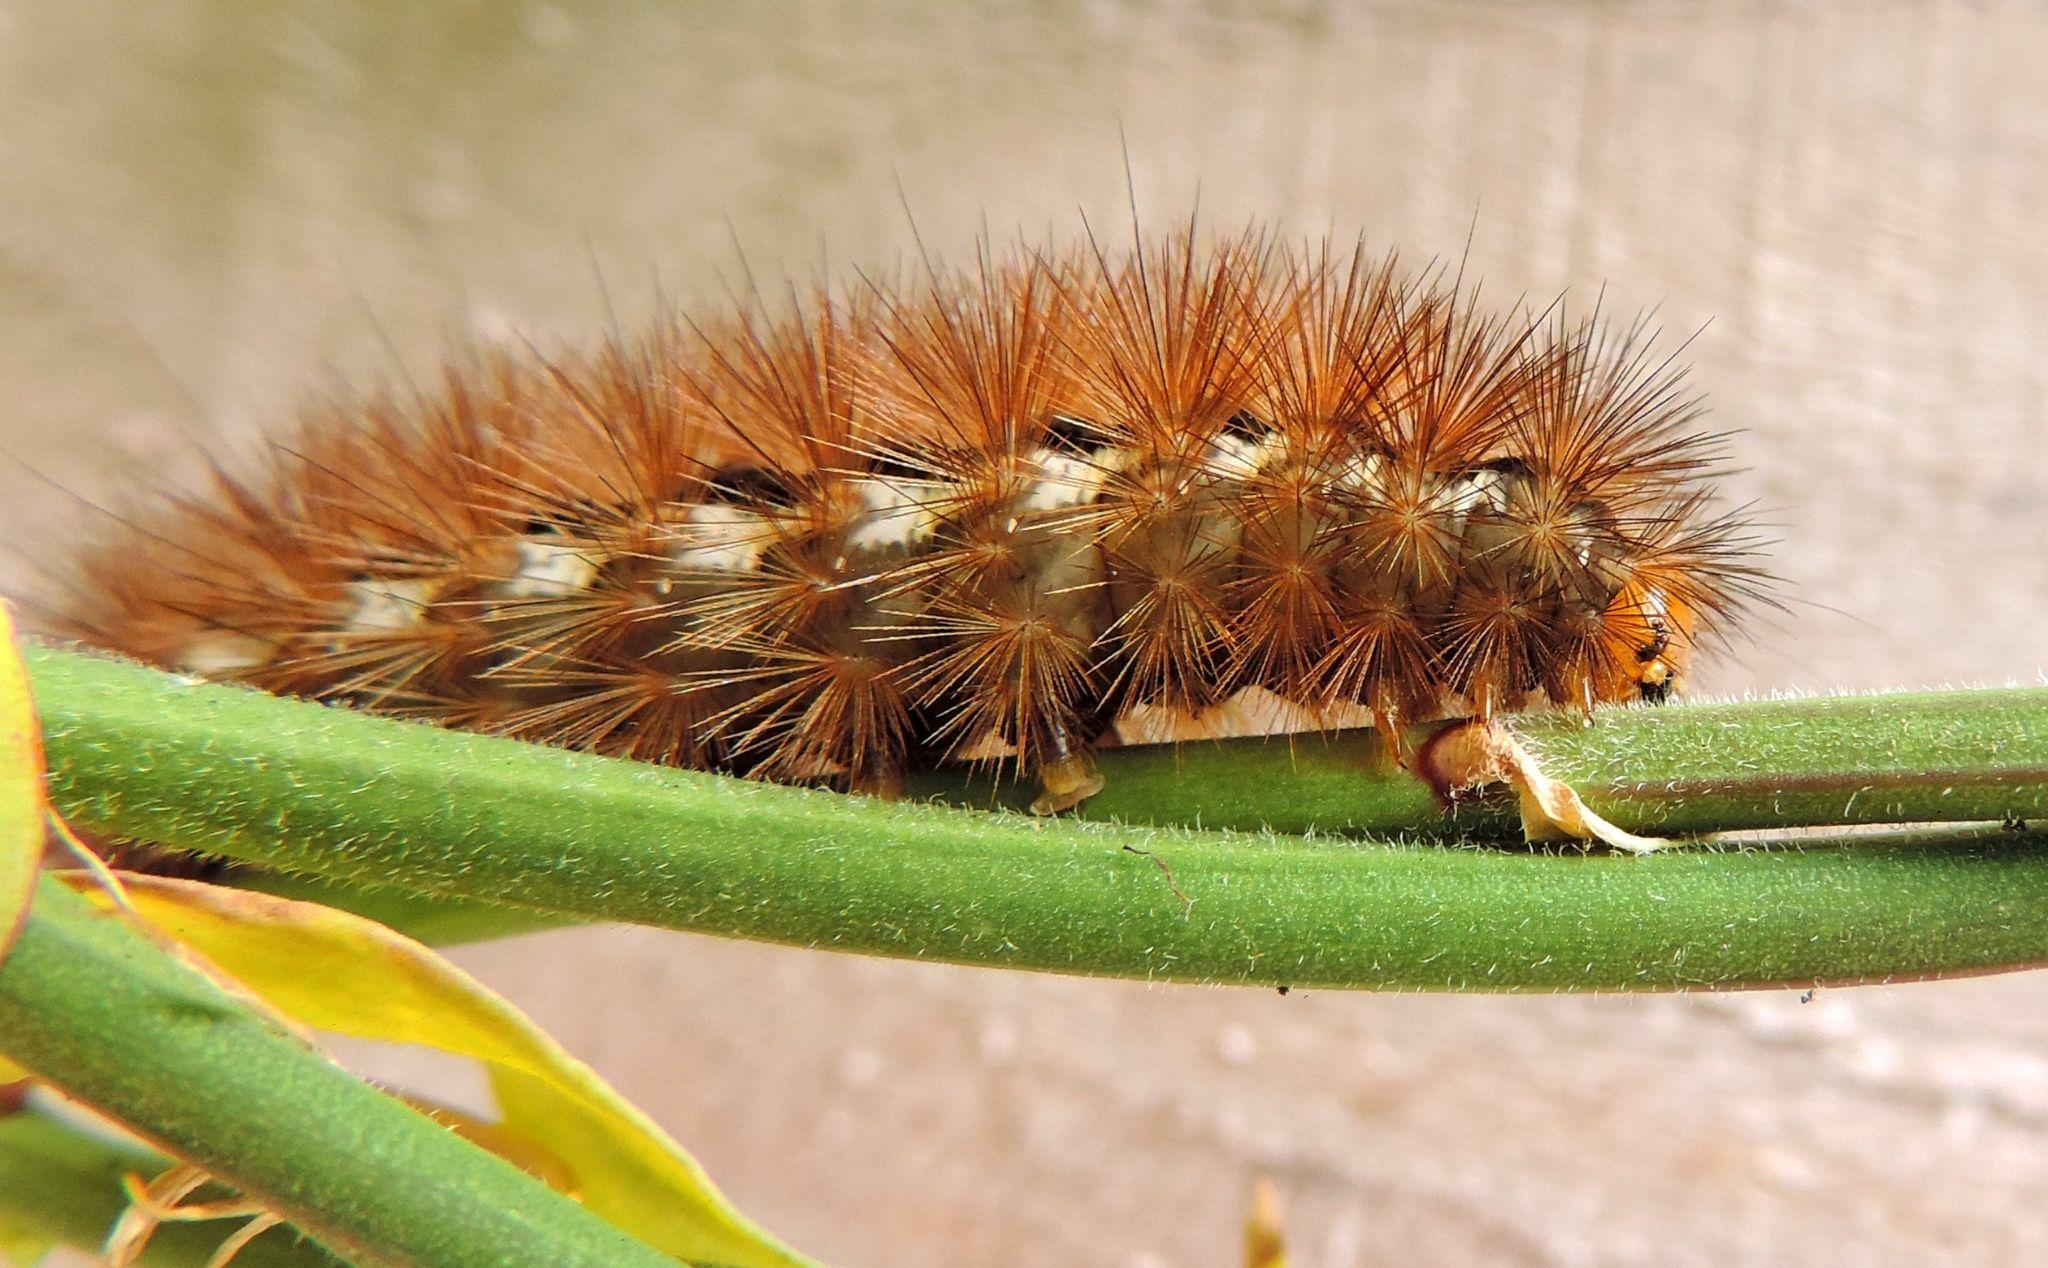 Pest Control: 5 Effective Steps To Keep Pests at Bay